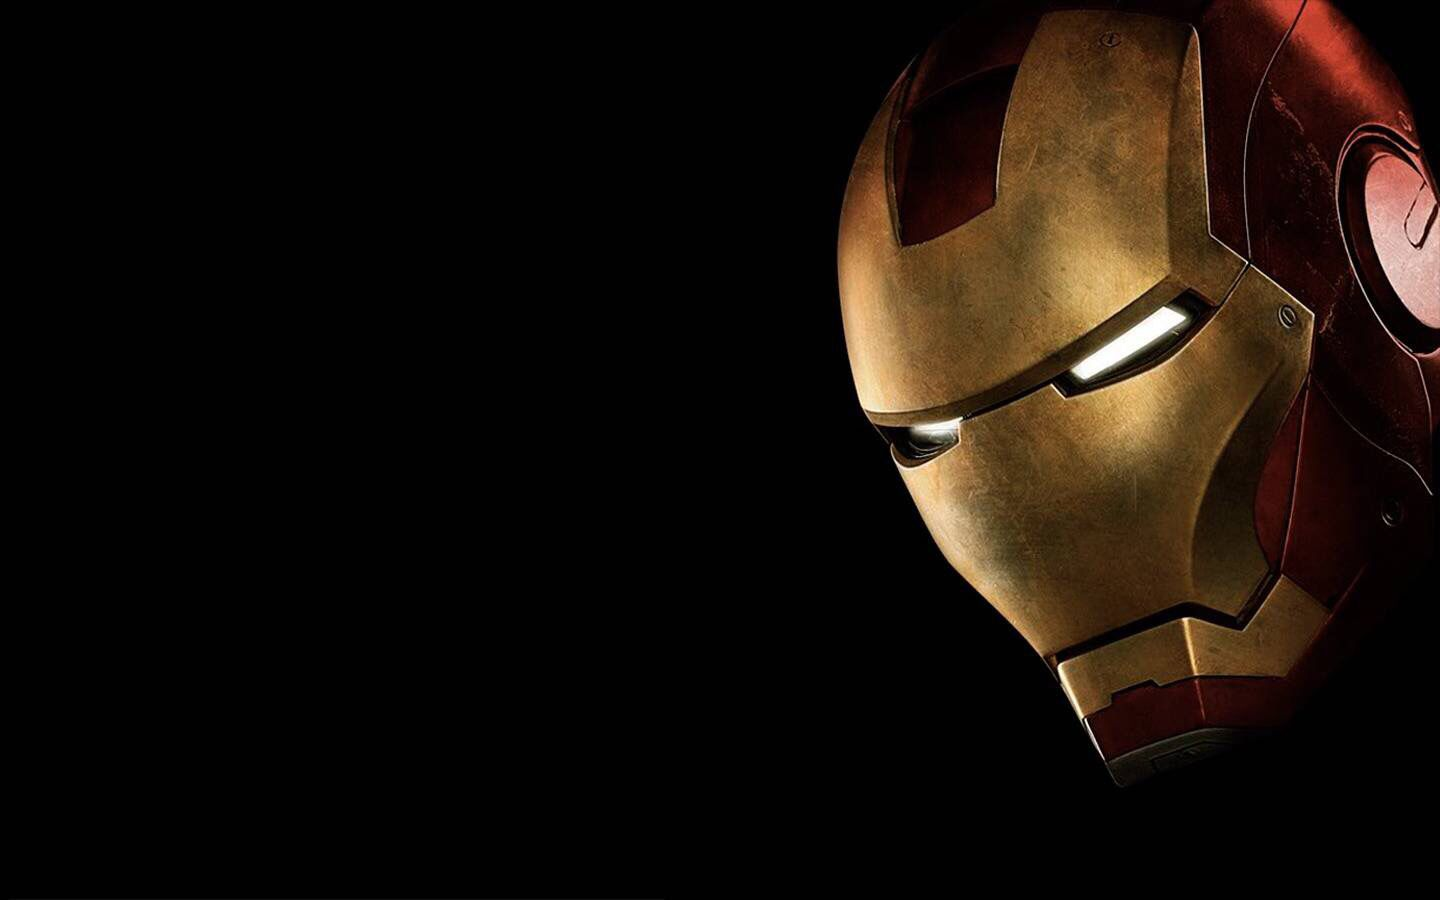 Pin By Mary Stover On Ironman Iron Man Wallpaper Iron Man Mask Iron Man Hd Wallpaper